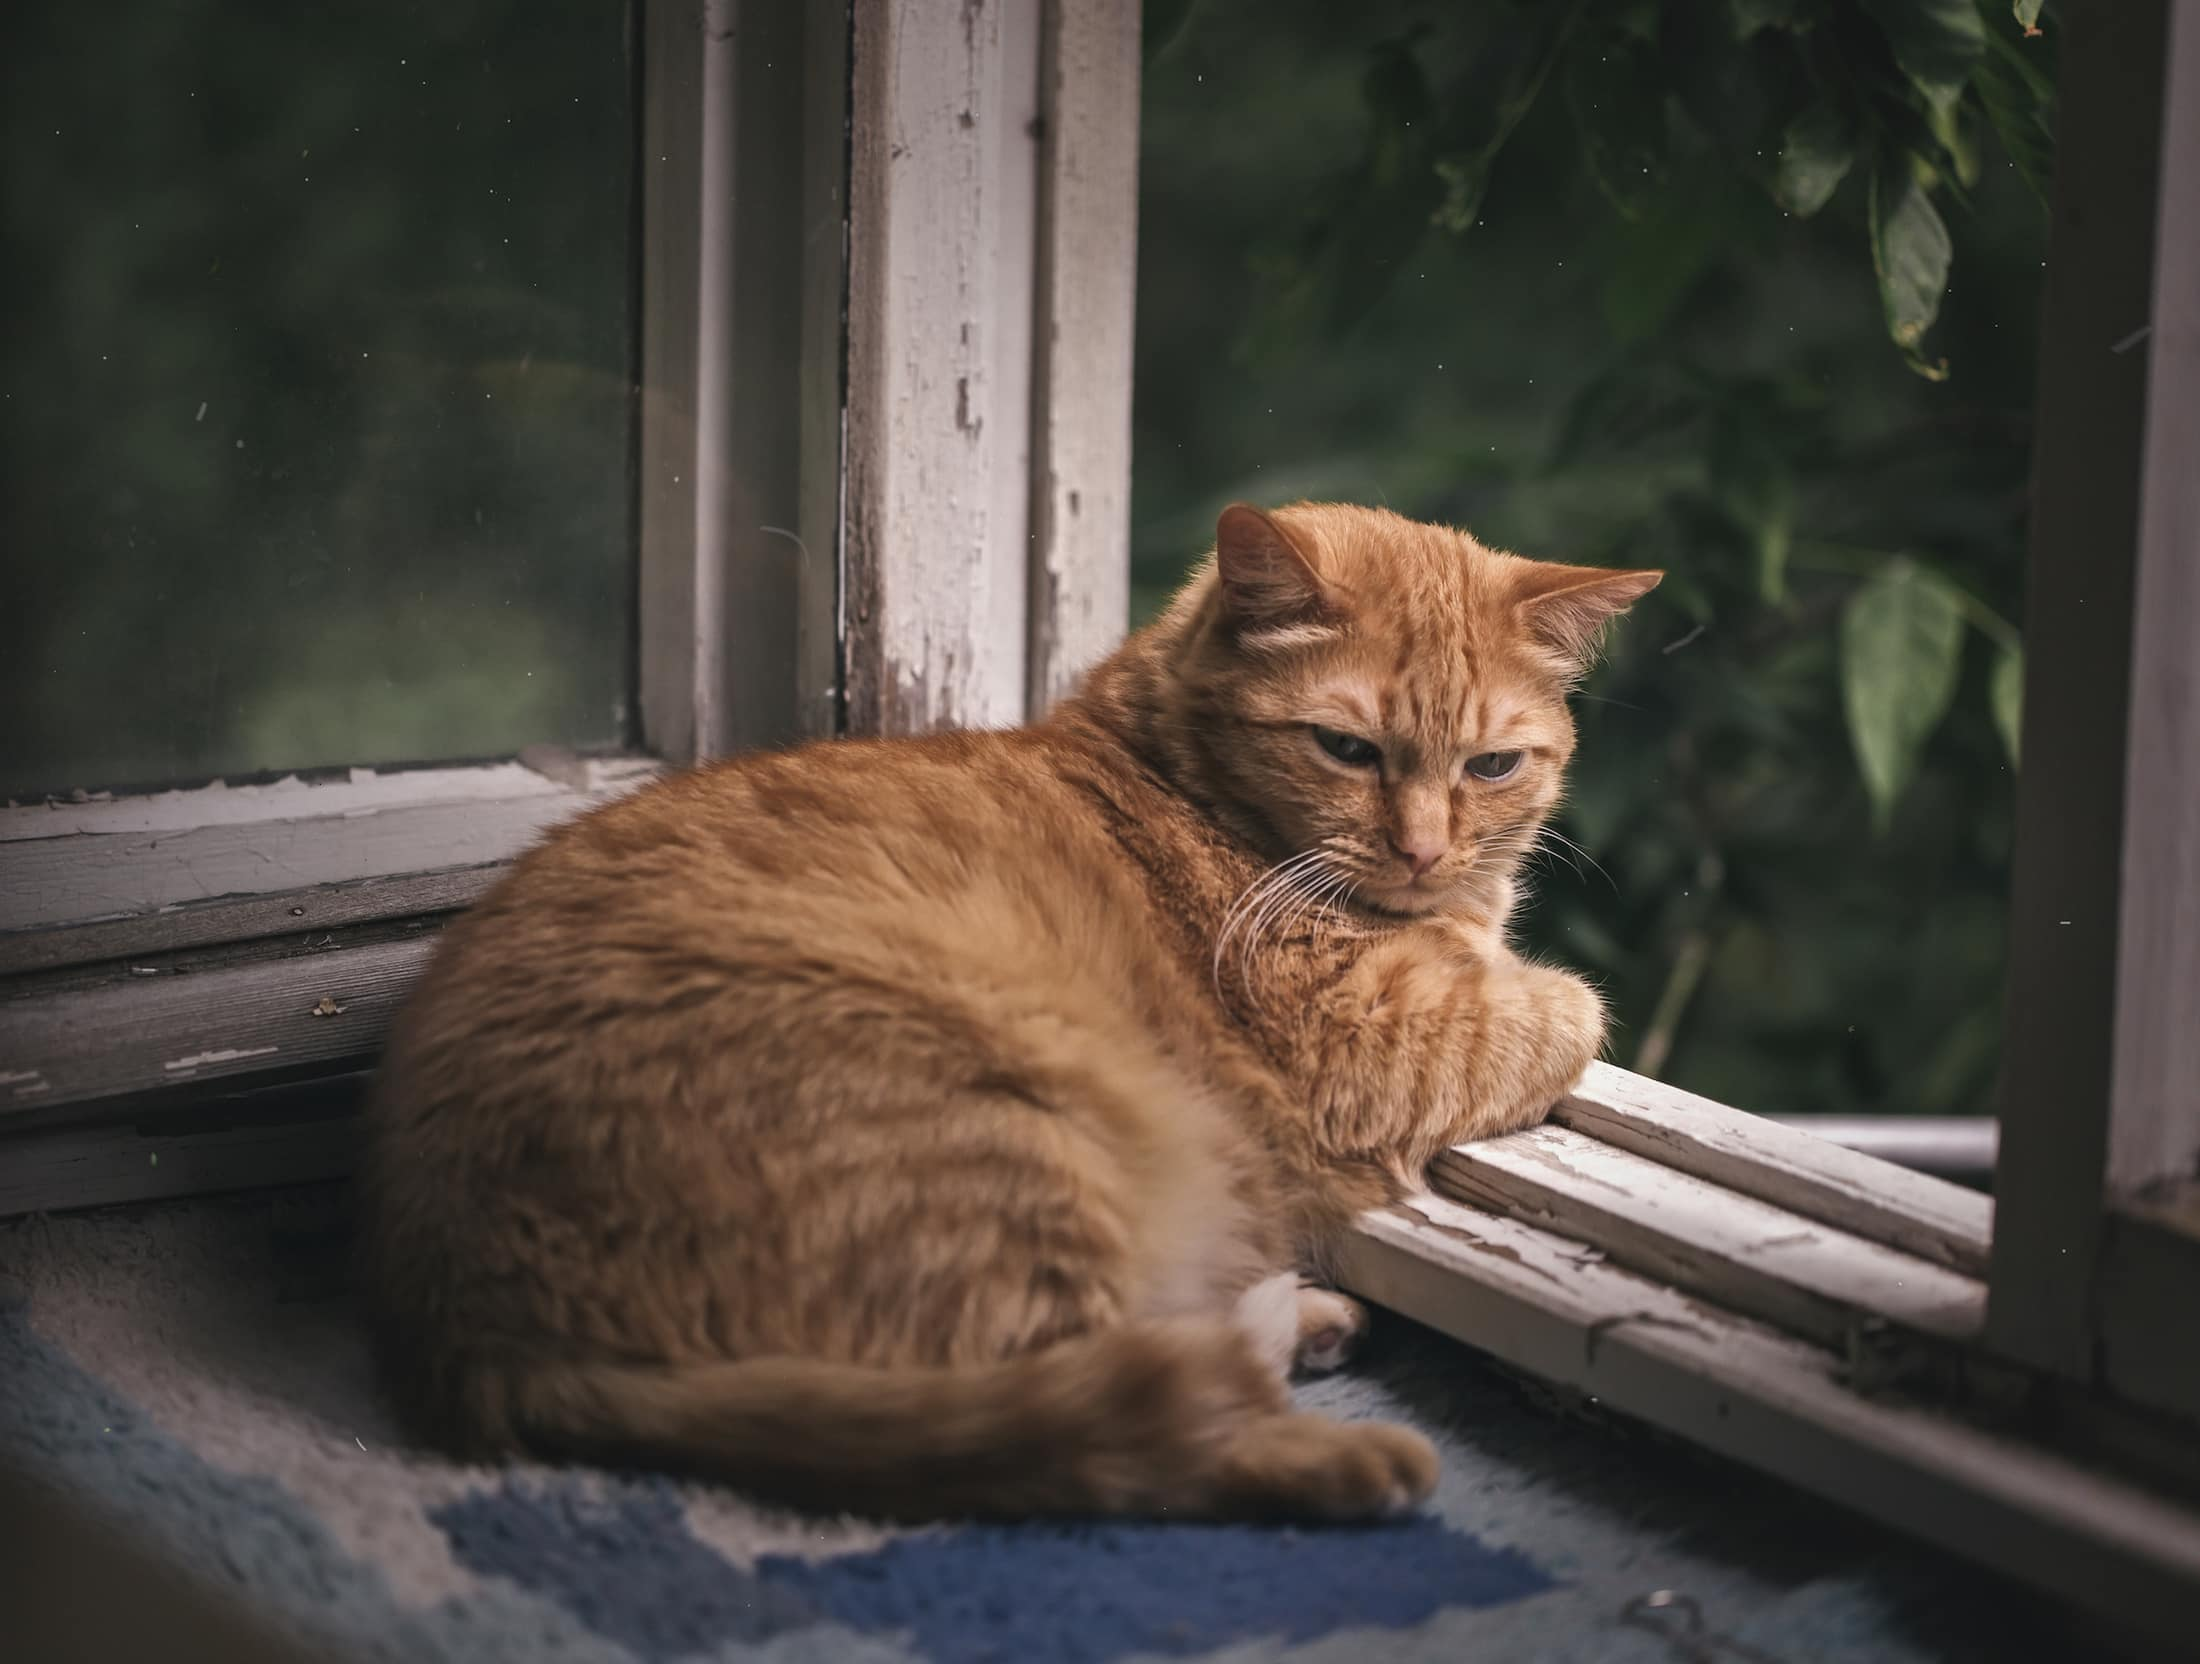 Ginger cat relaxing on a balcony, domestic cat